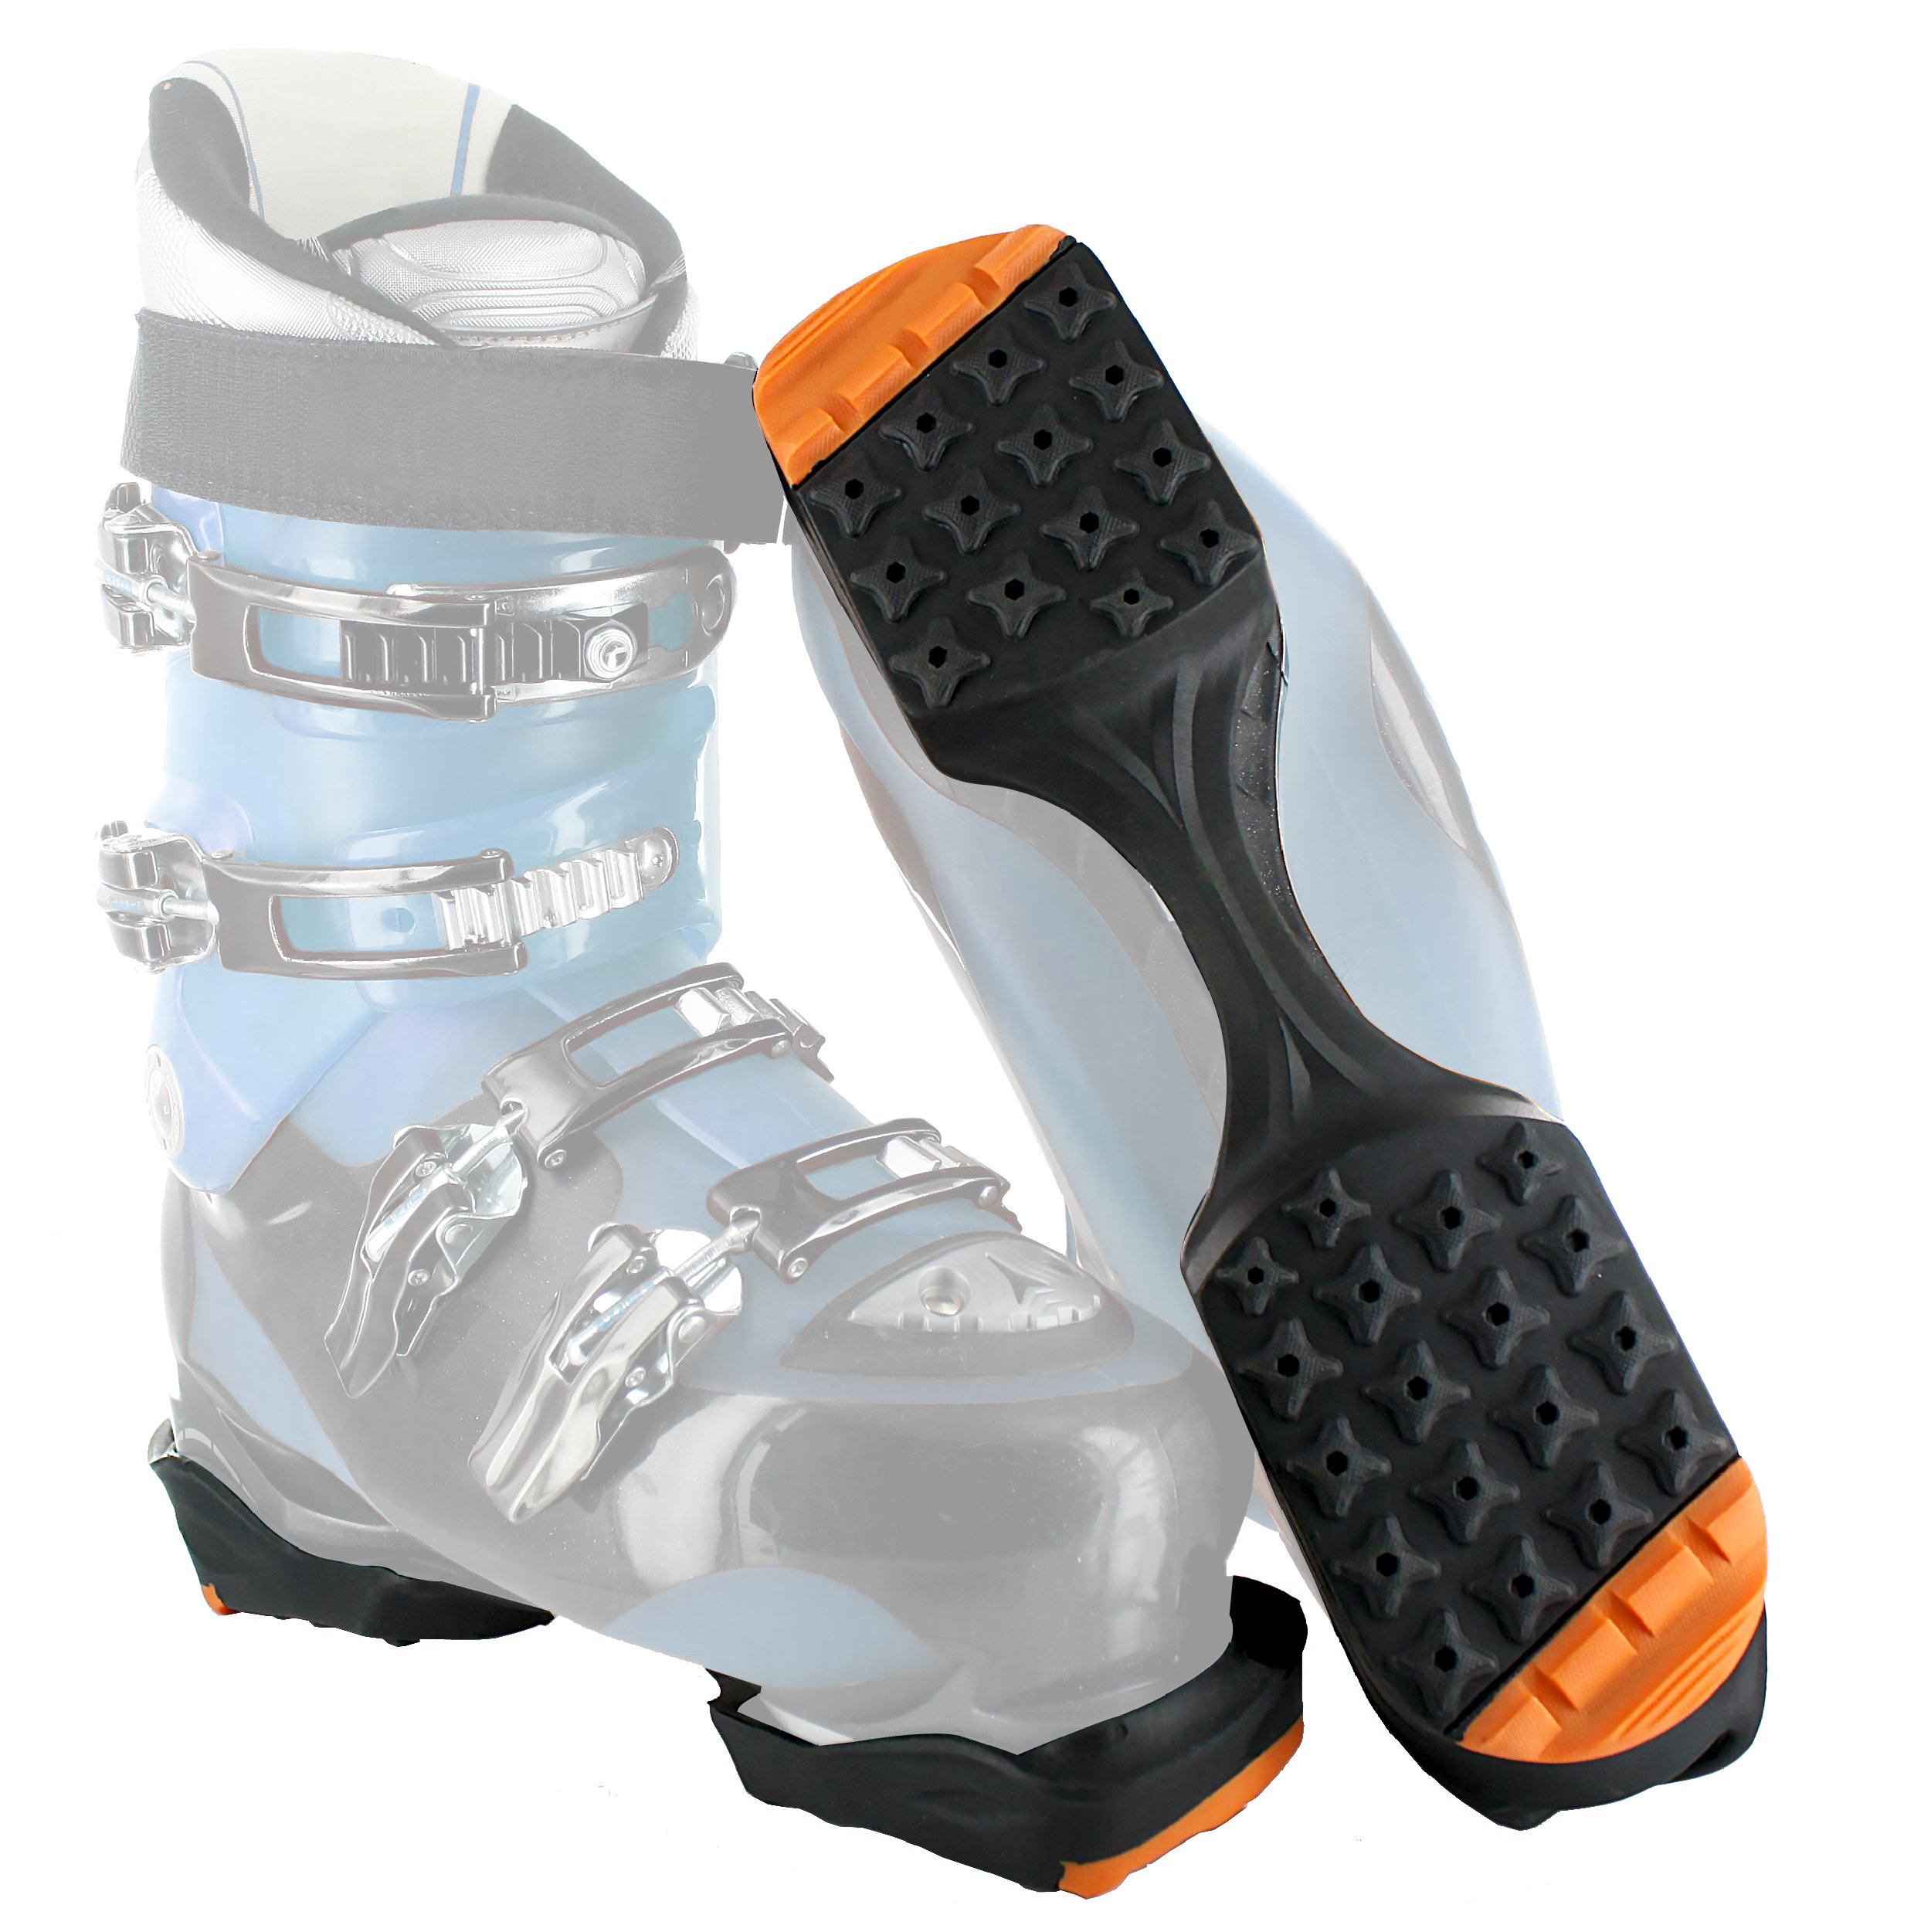 YakTrax SkiTrax Ski Boot Tracks Traction and Protection Cleats (Pair), Black/Orange, Large by YakTrax